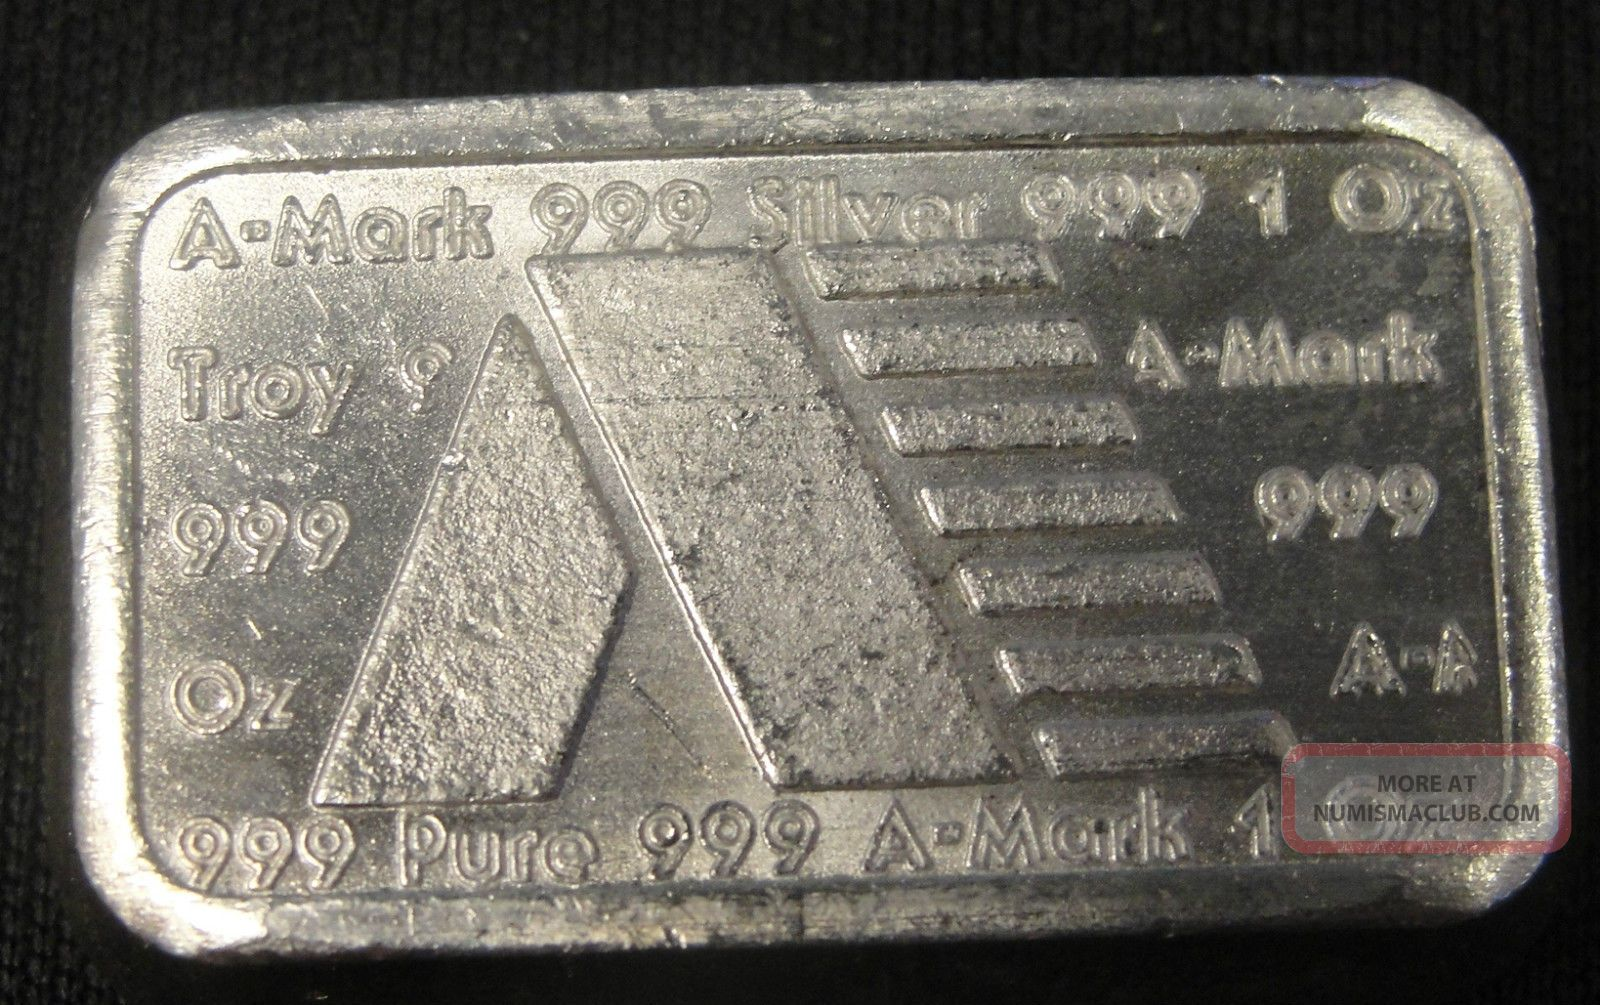 Rare A Mark Silver Bullion Chunky Bar Brick 1oz 999